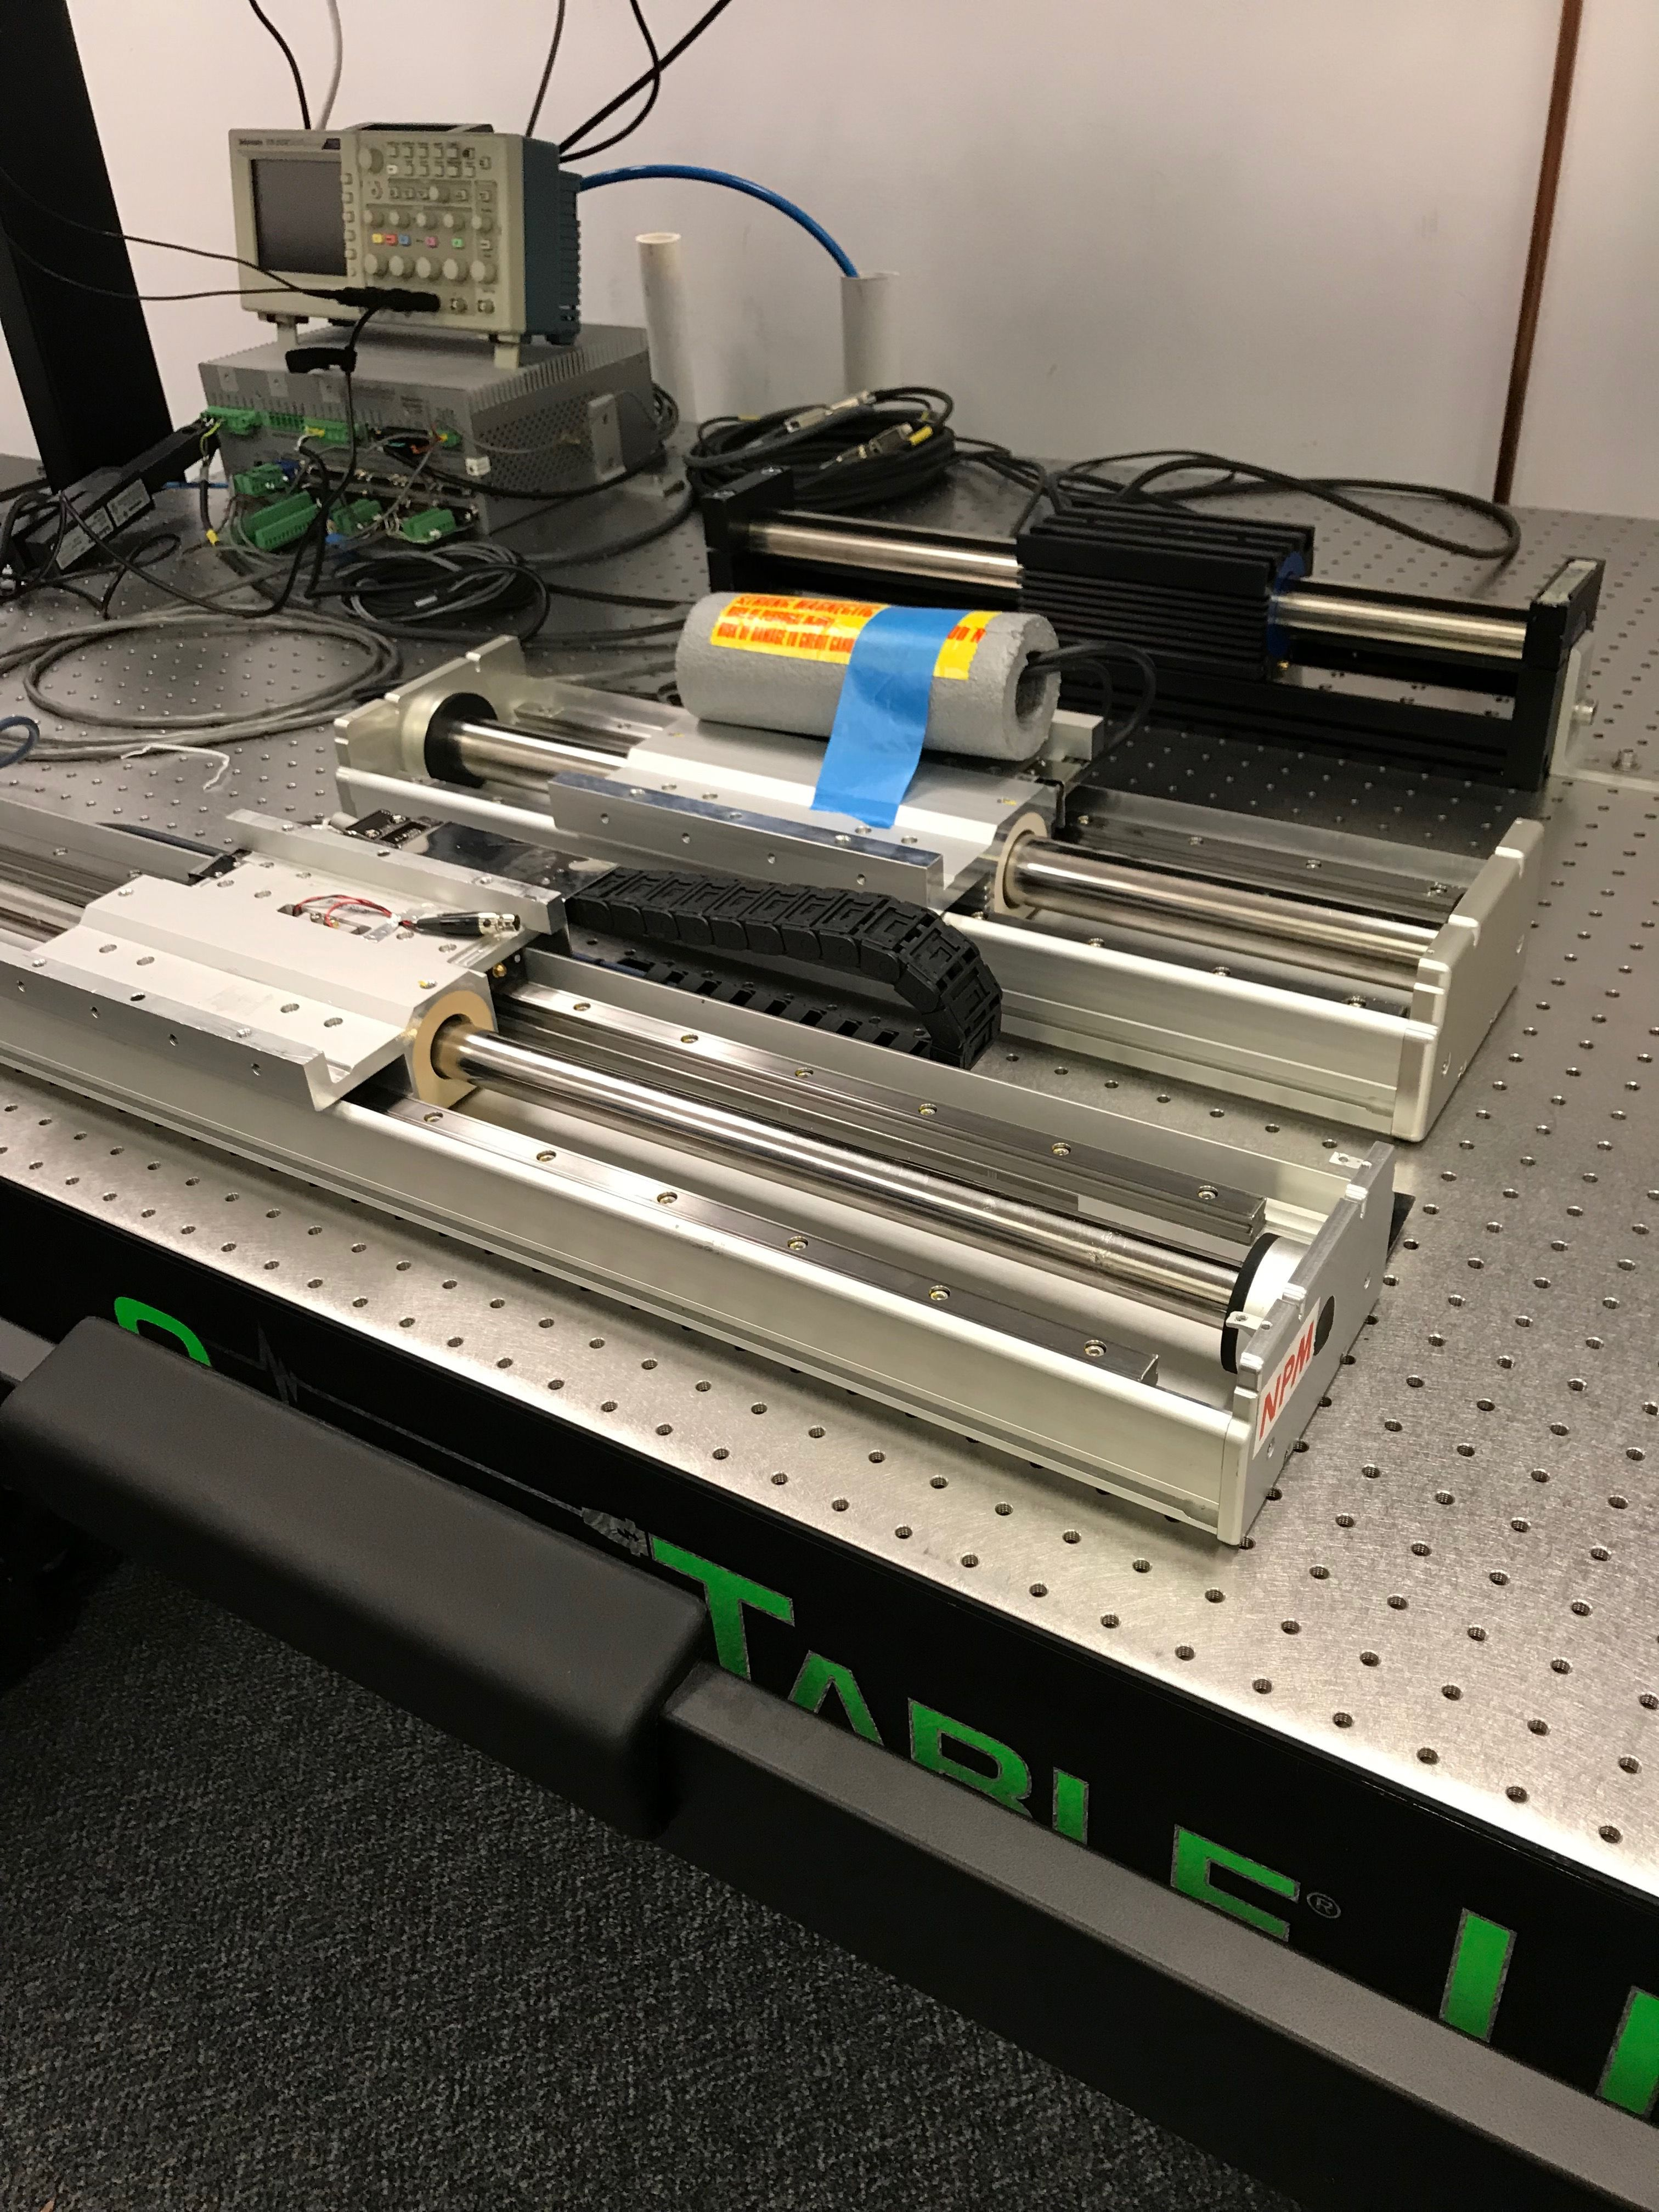 Pin by Steve D on Automated/Robotics Treadmill, Gym